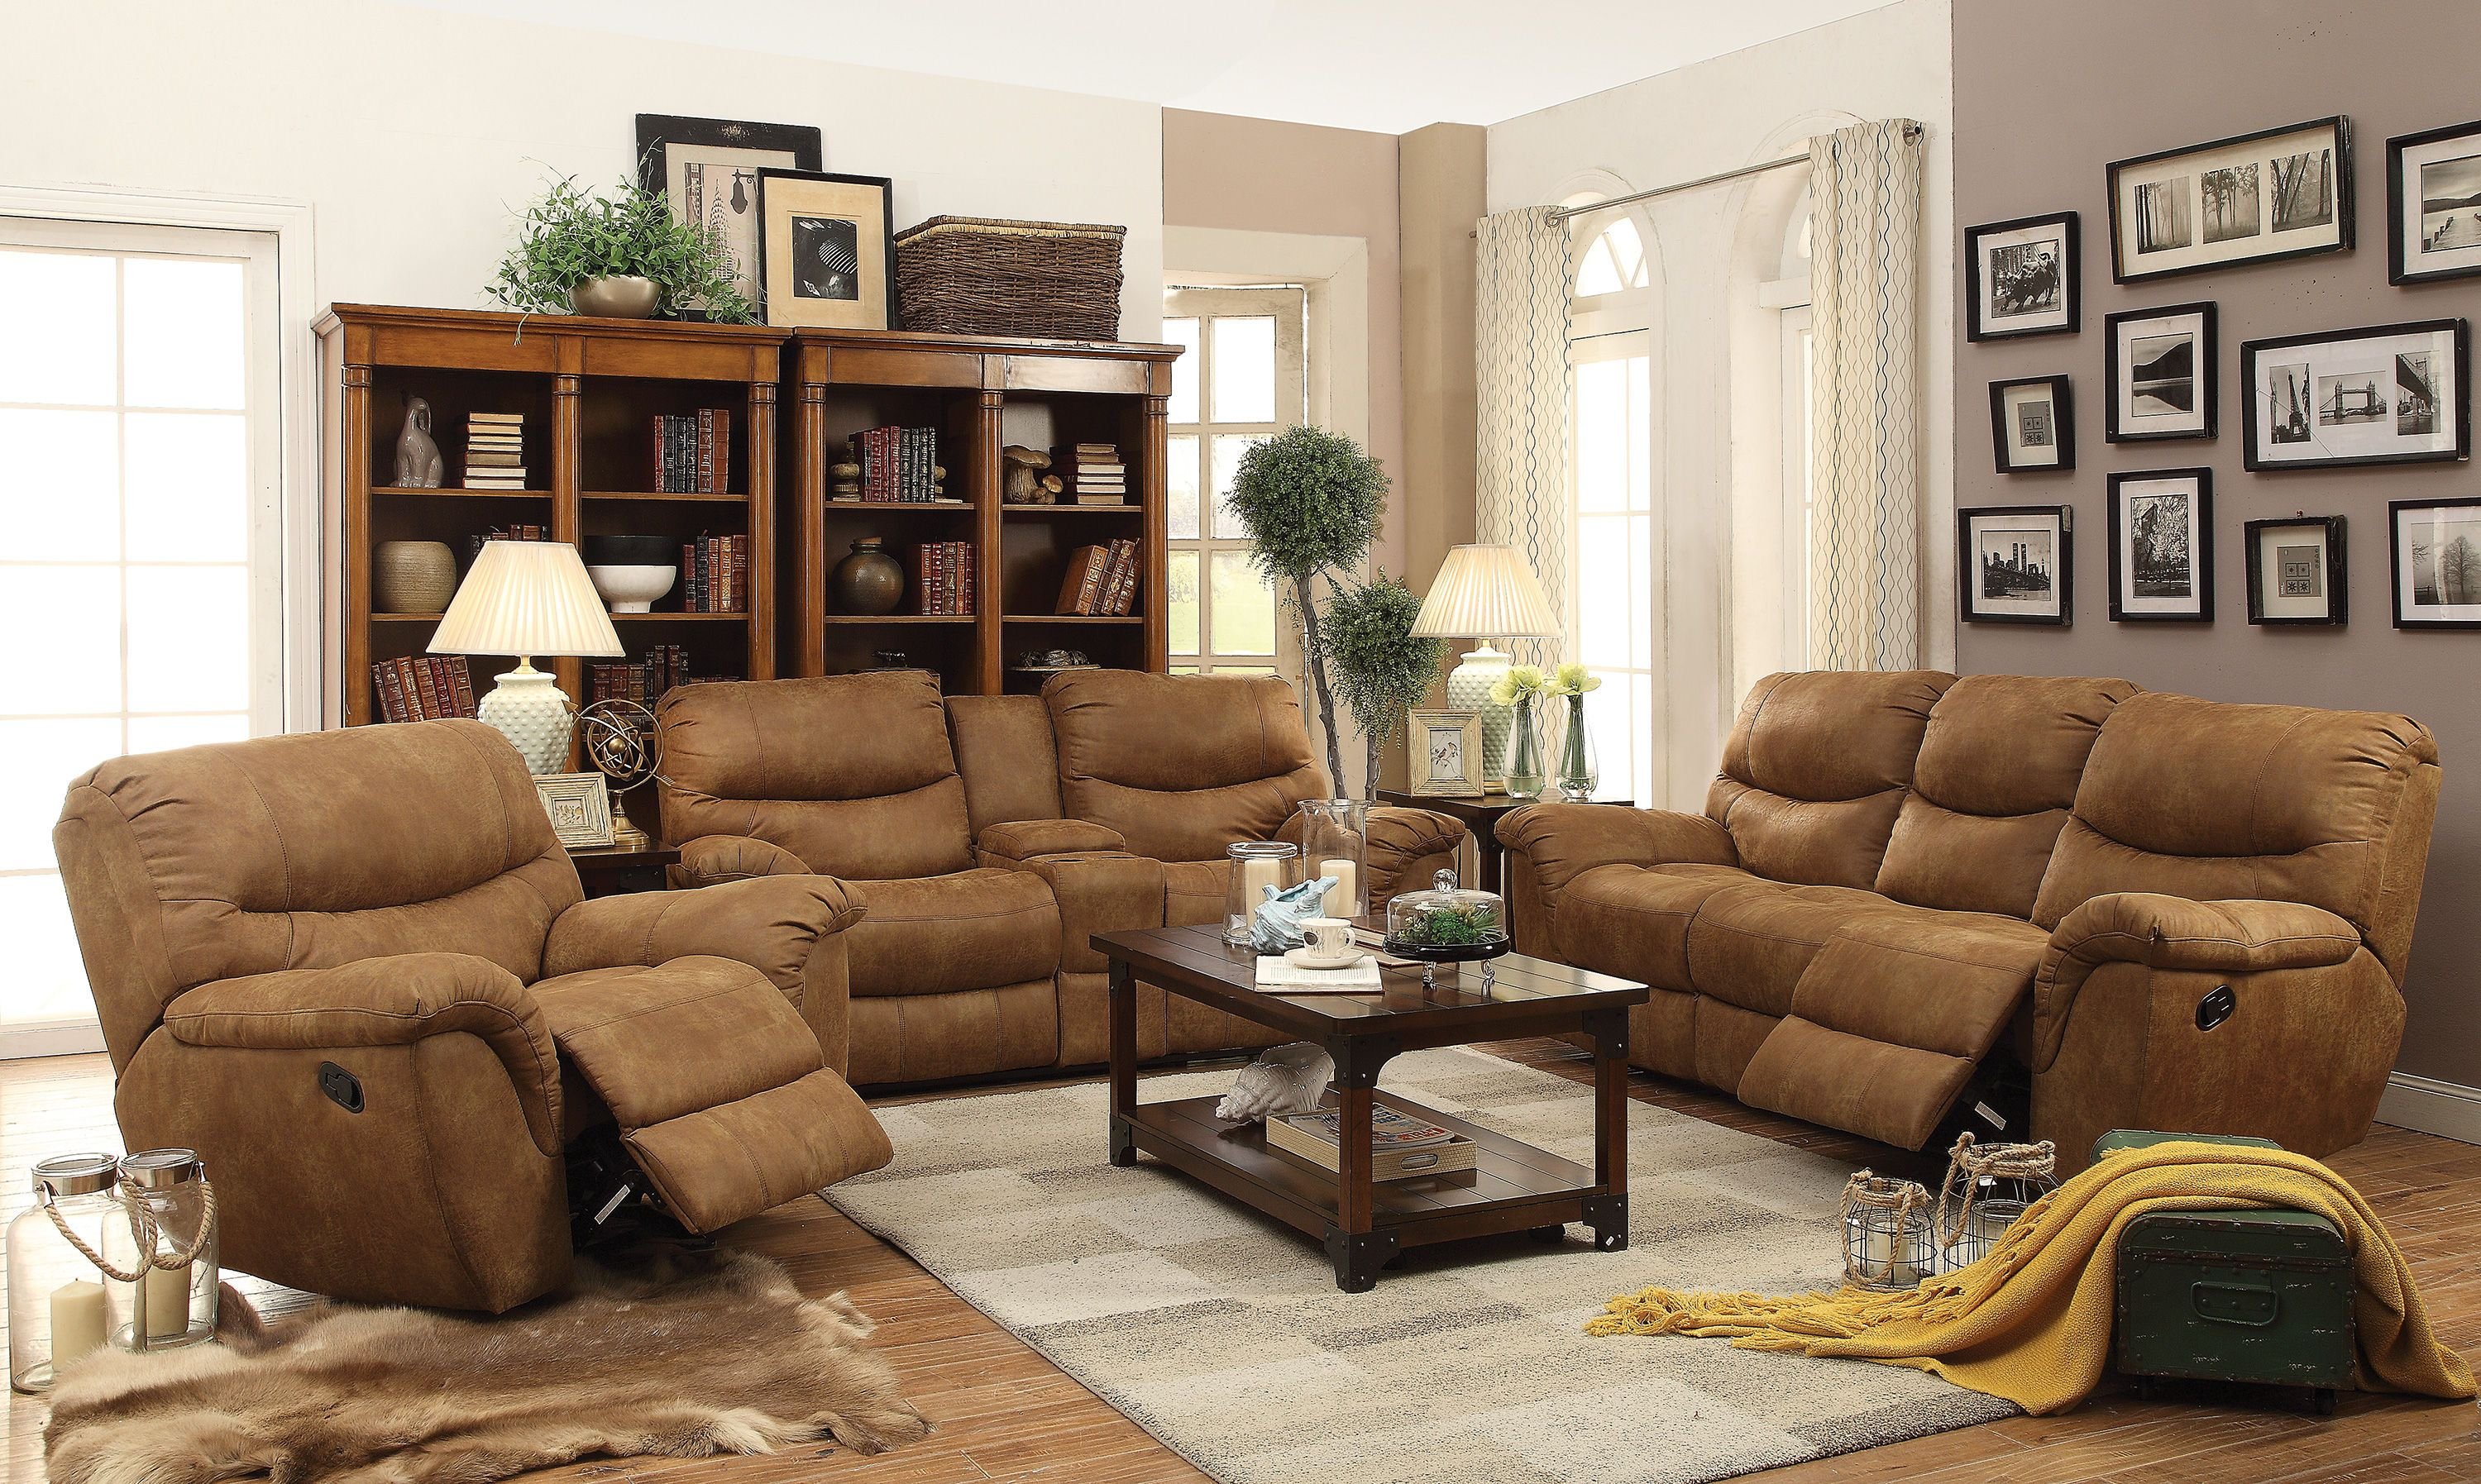 microfiber living room furniture sets large area rugs hancox motion light brown set the classy